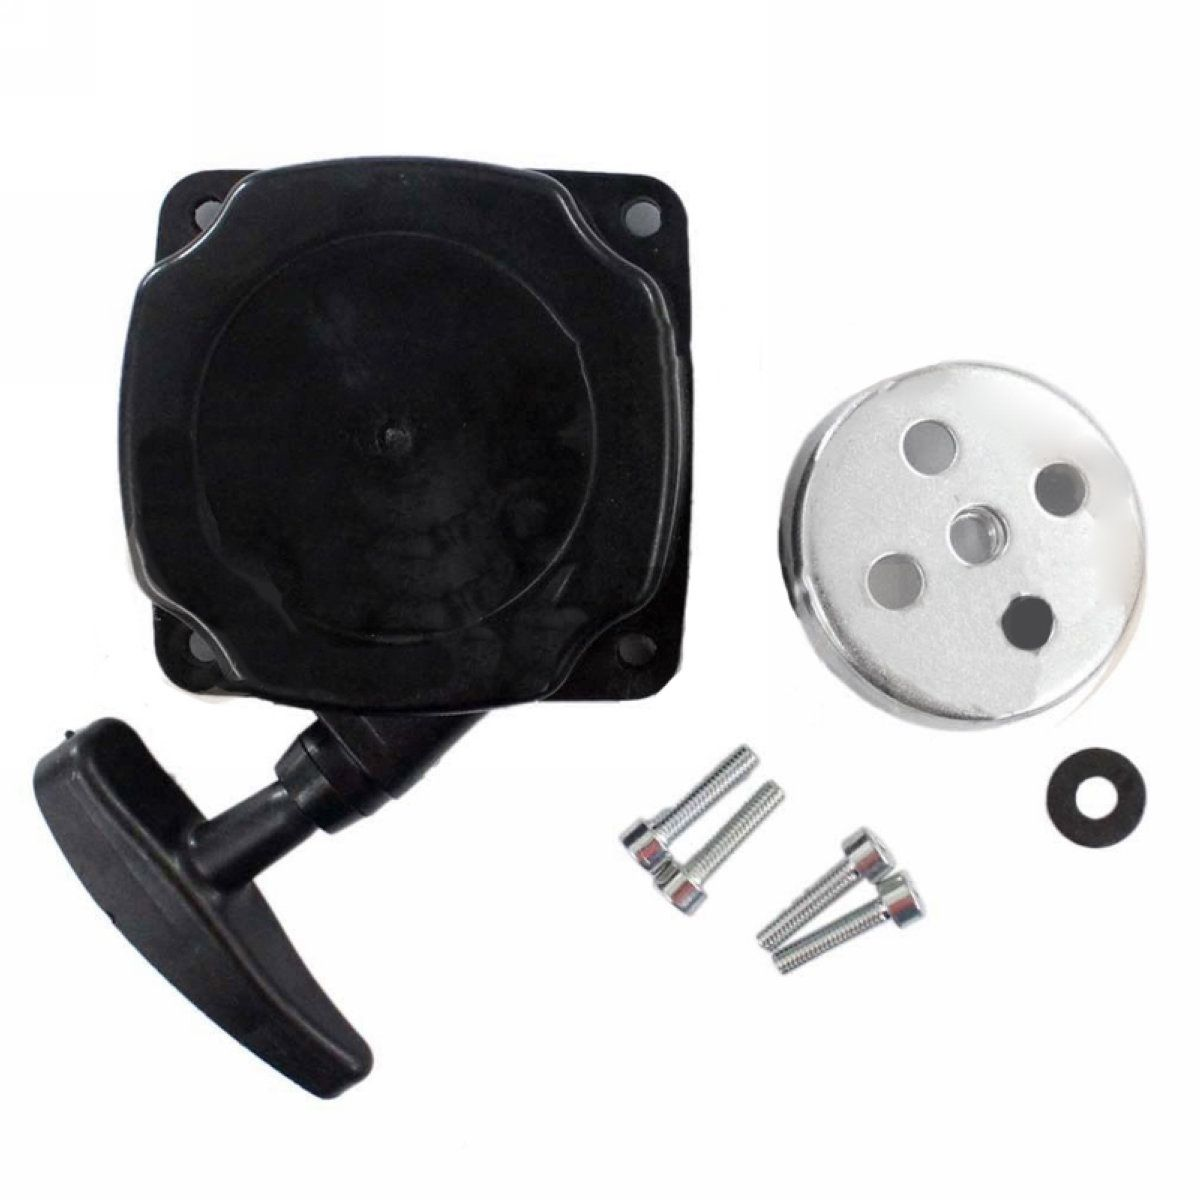 New Universal Recoil Pull Starter Assembly Lawn Mower Parts Spares for Lawnmower Brush Cutter Strimmer Garden Tools